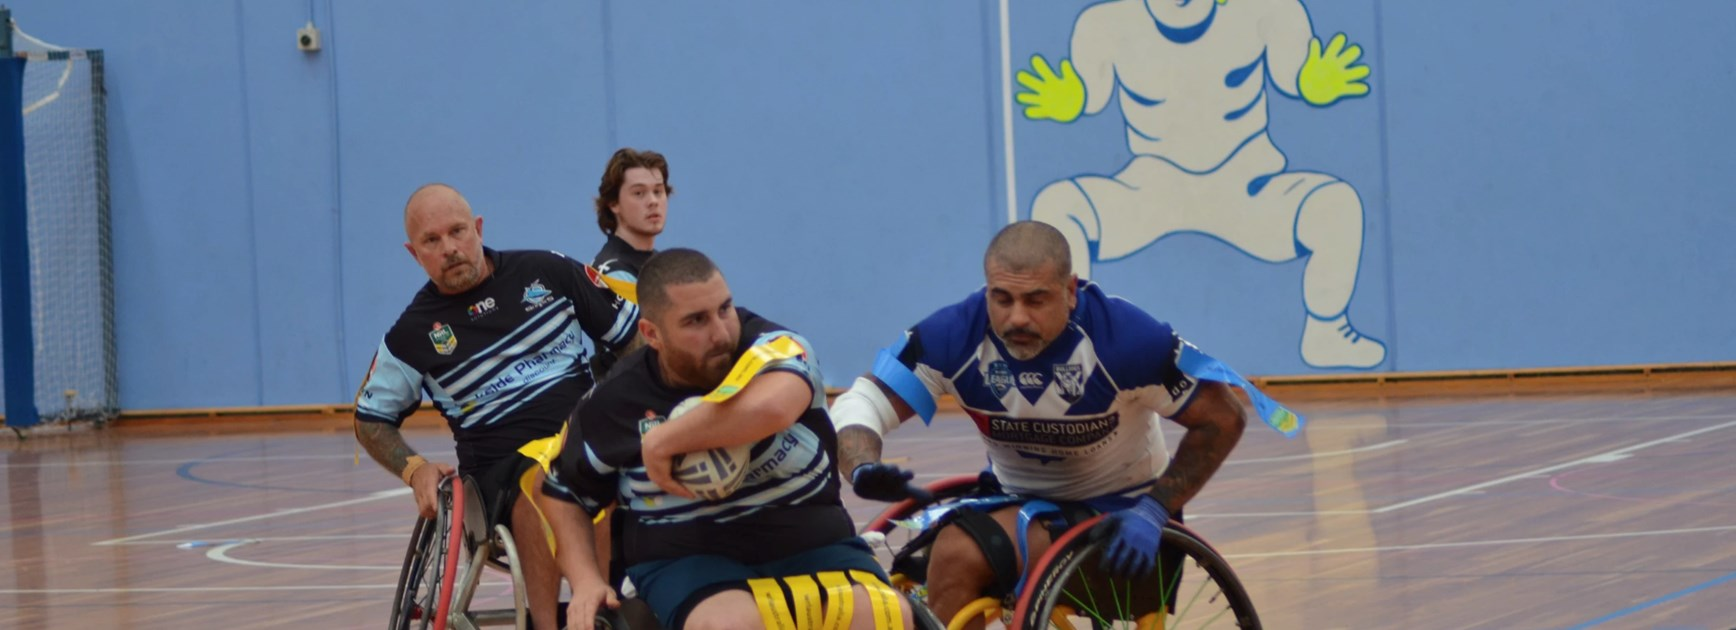 NSW Wheelchair Rugby League for Sydney's North